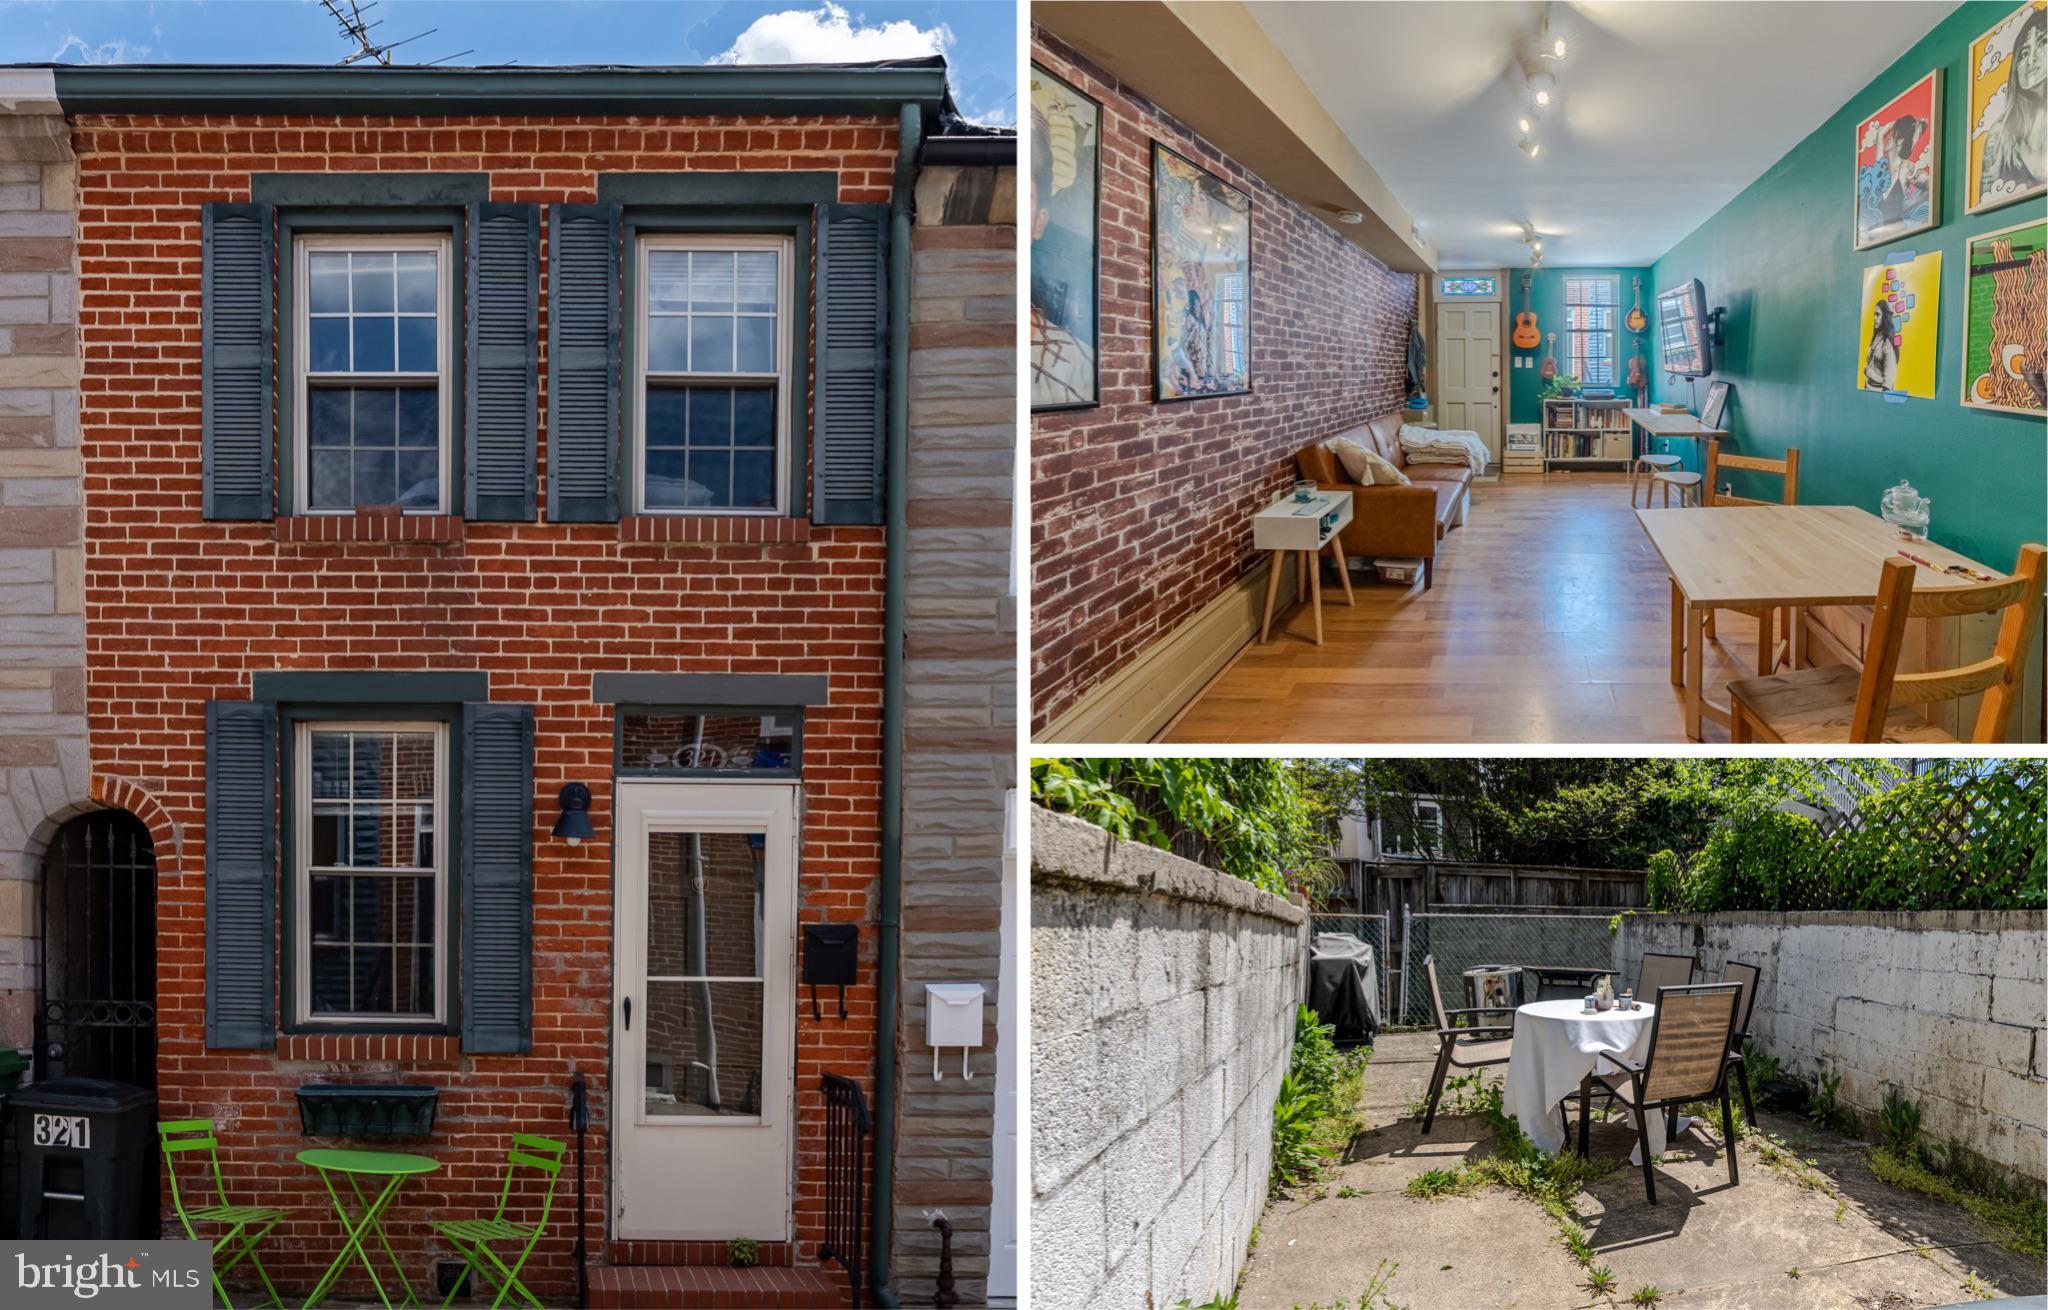 Fantastic 2BR /2FB brick-front home on a quiet street in perfect Upper Fells Point location! Priced